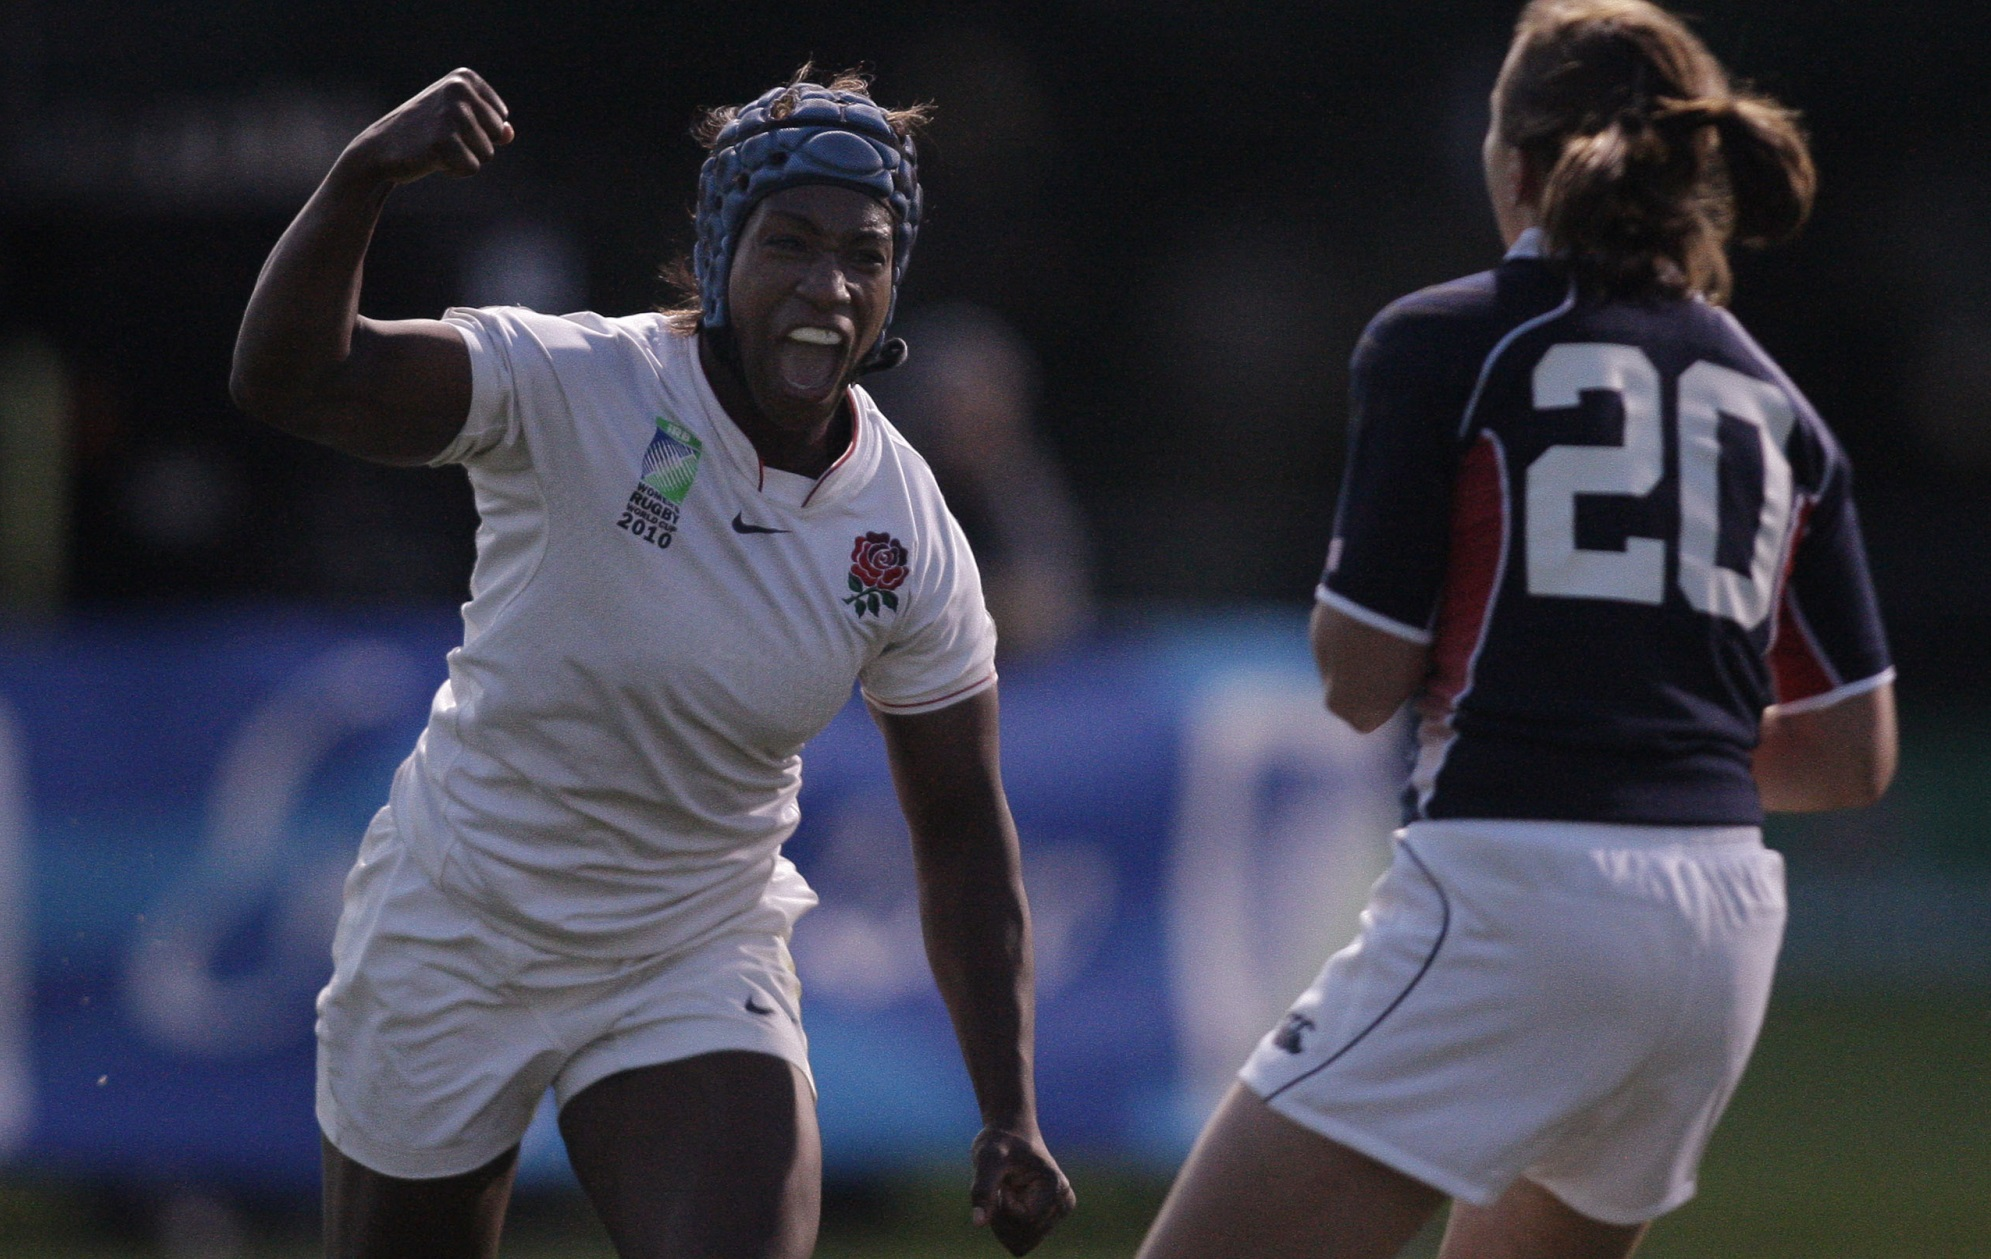 Engalnd rugby union player Maggi Alphonsi punches the air in delight